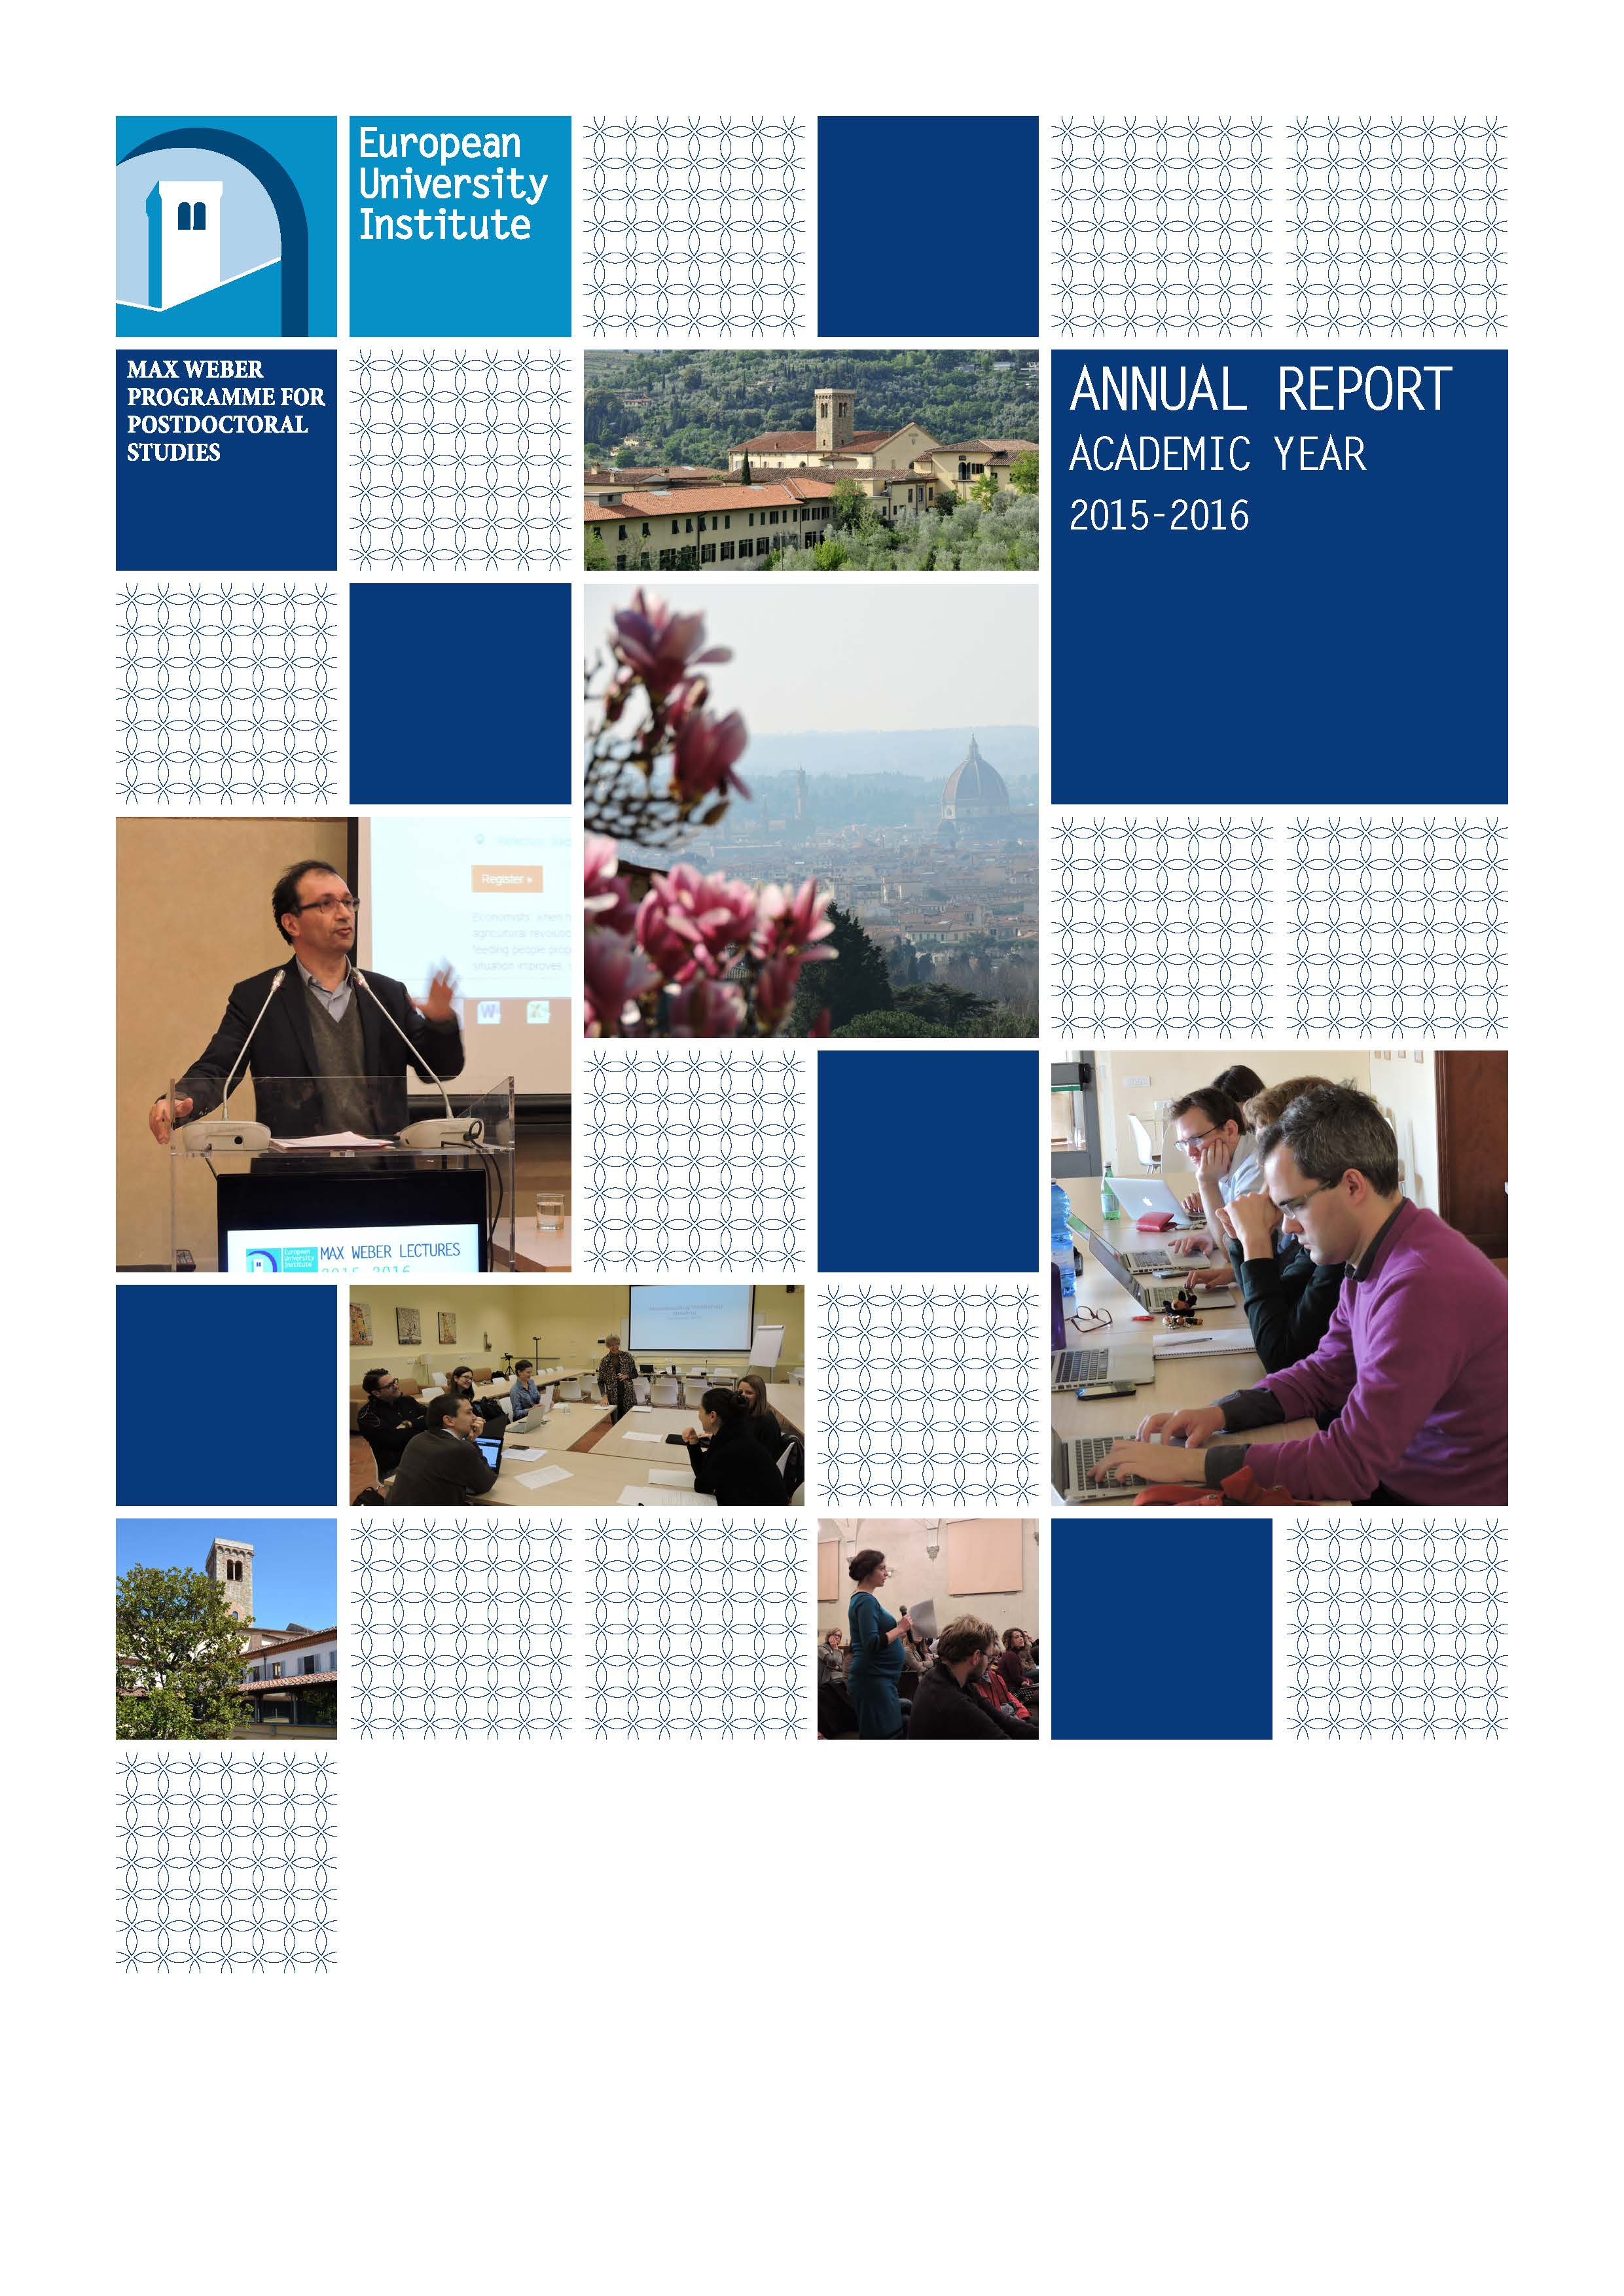 yearlyl report 2015-16